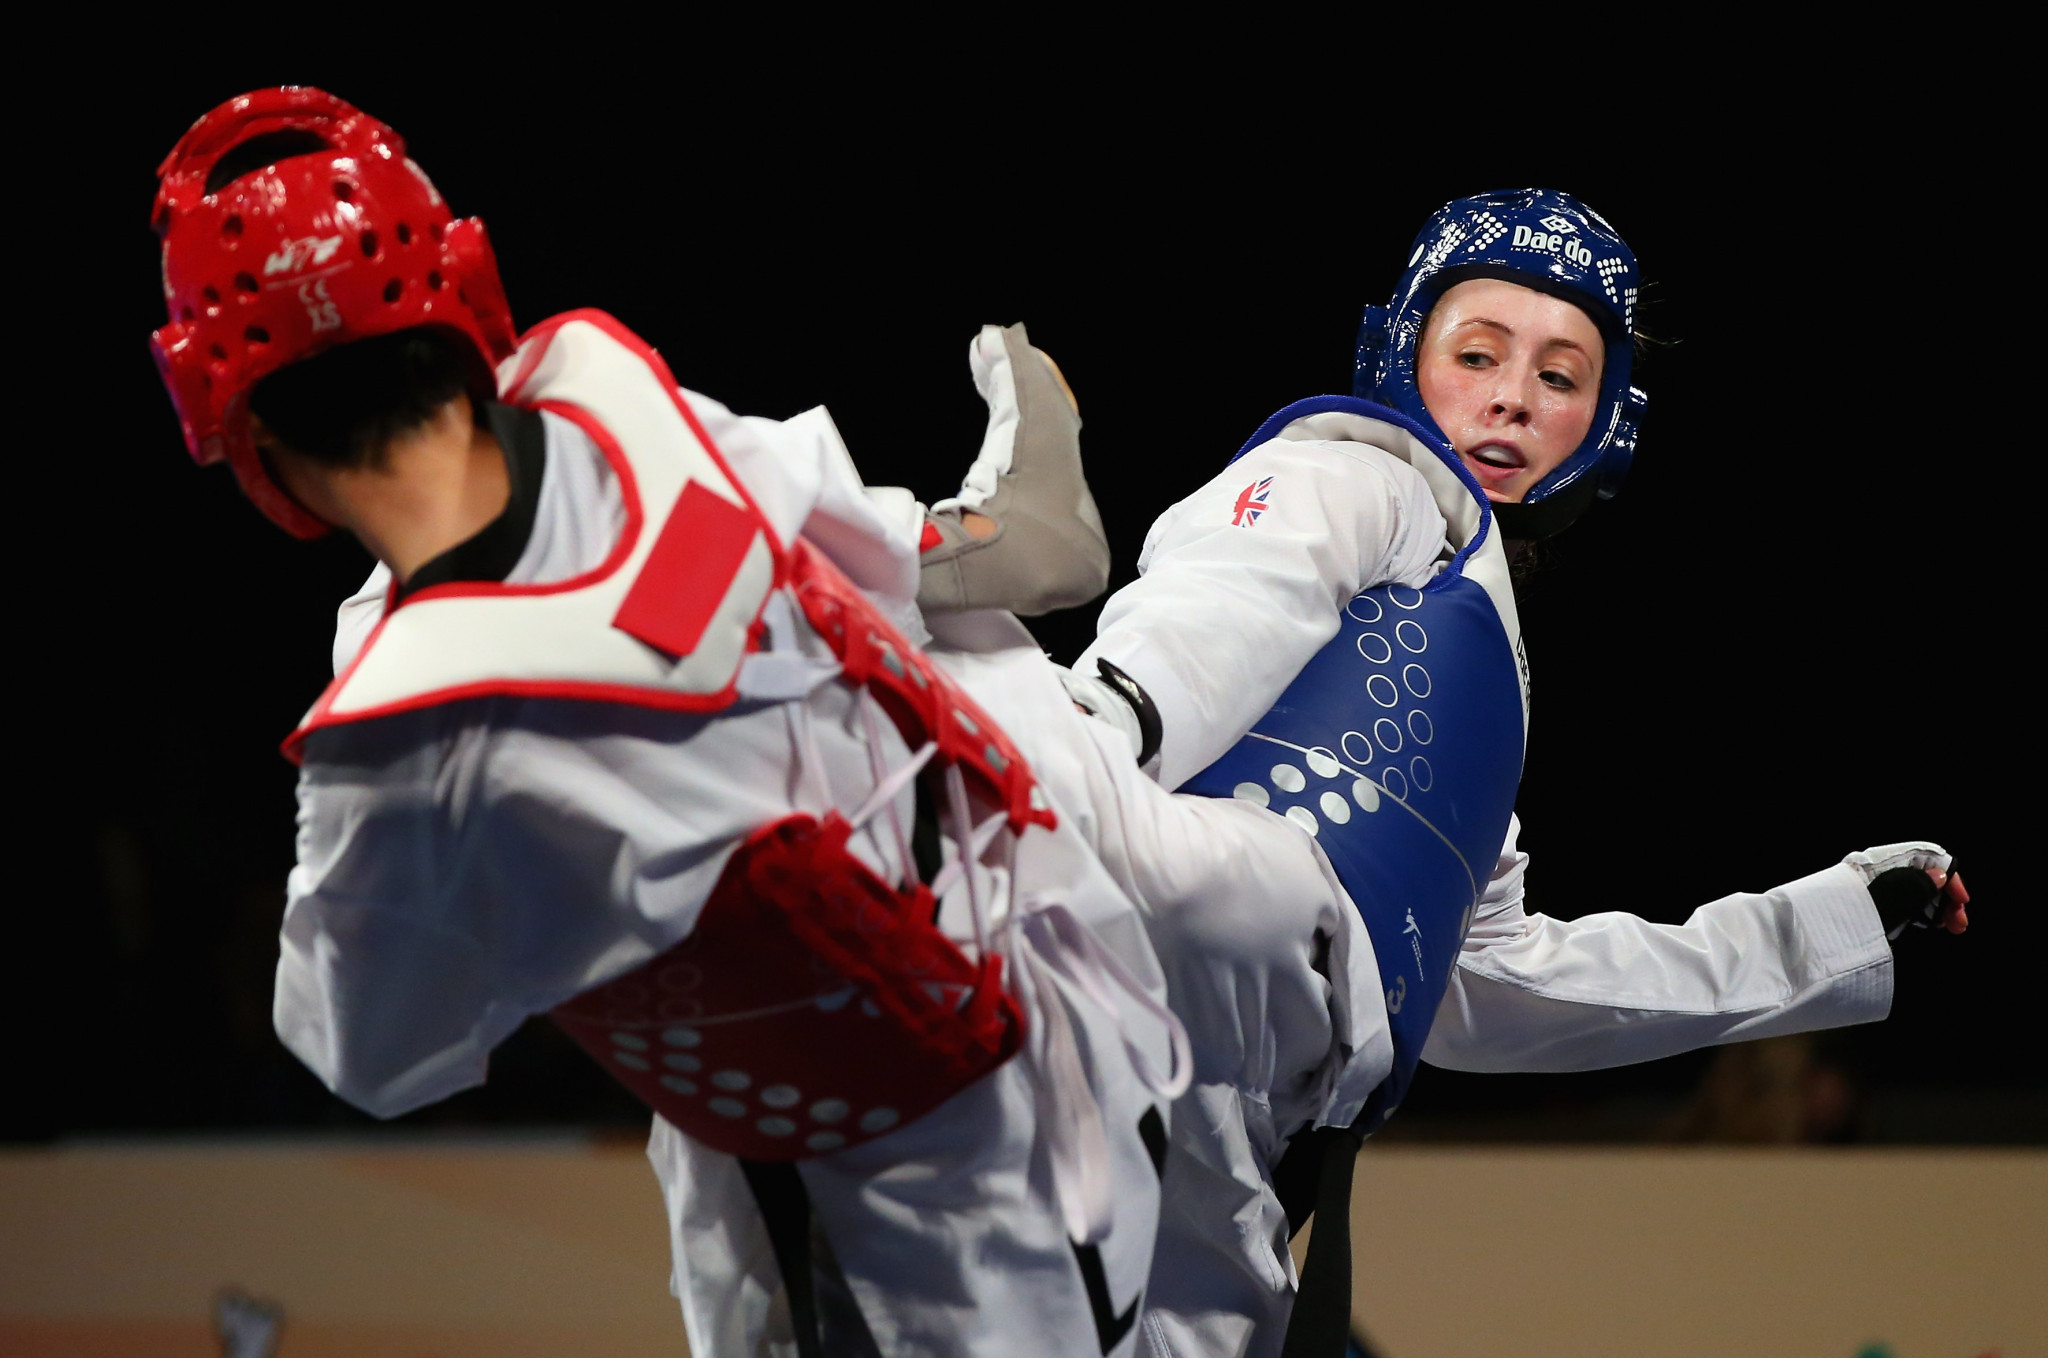 Britain's Jade Jones will hope to become world champion at the World Taekwondo Championships in Manchester ©Getty Images